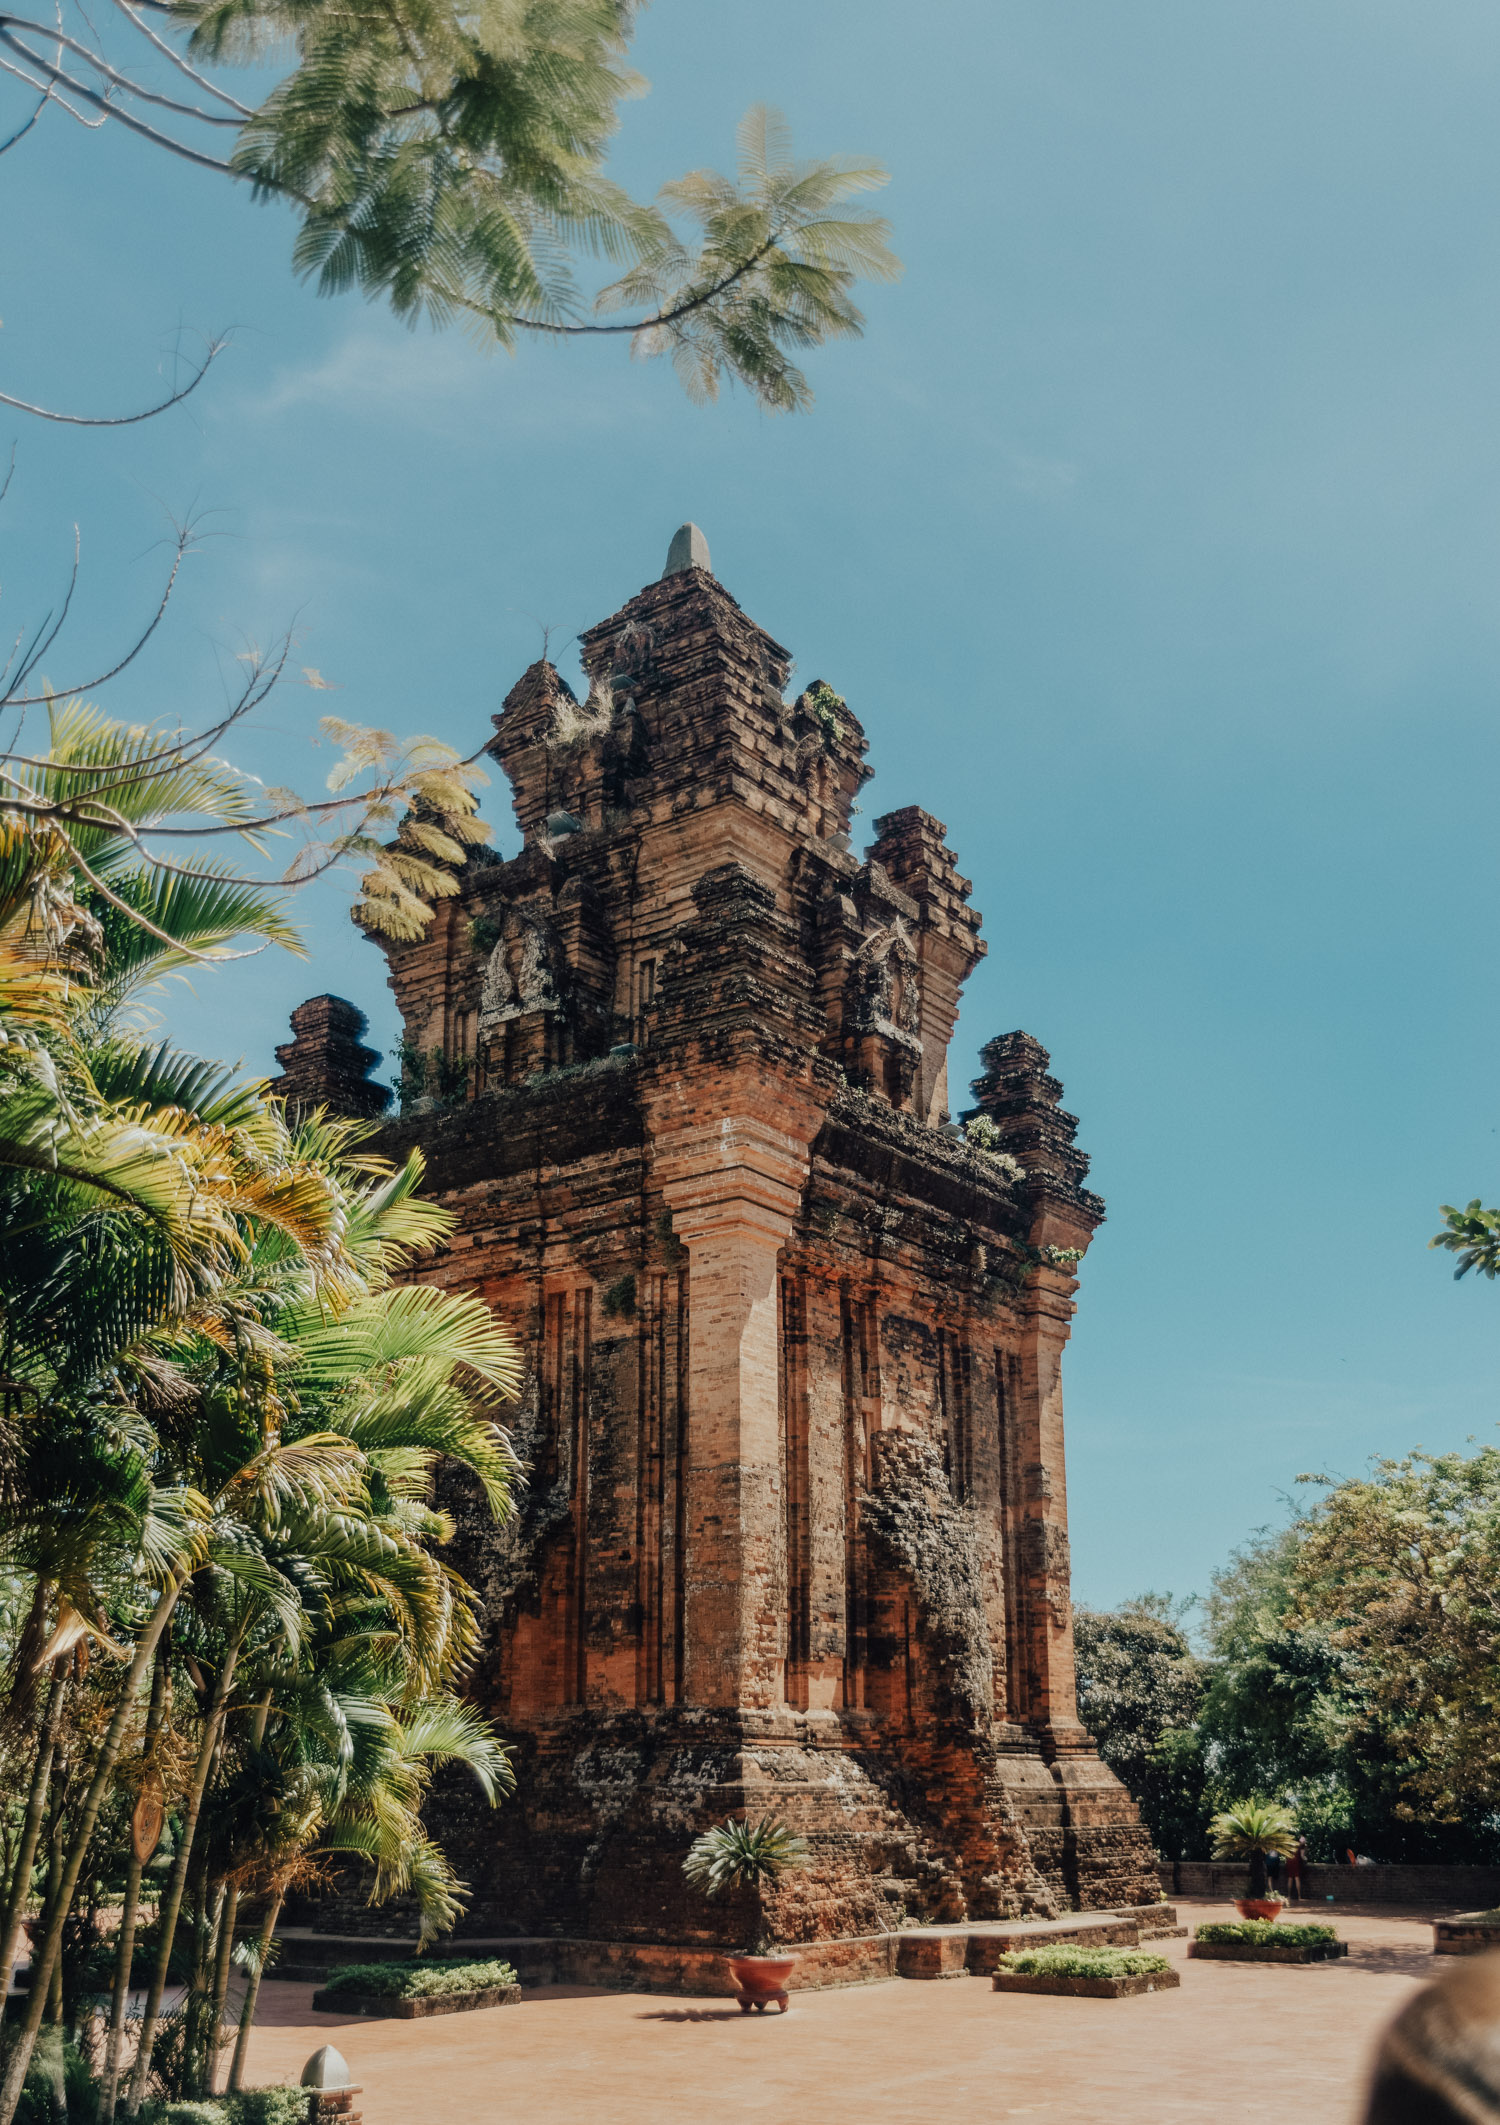 Nhan Tower - Things to Do in Phu Yen, Vietnam